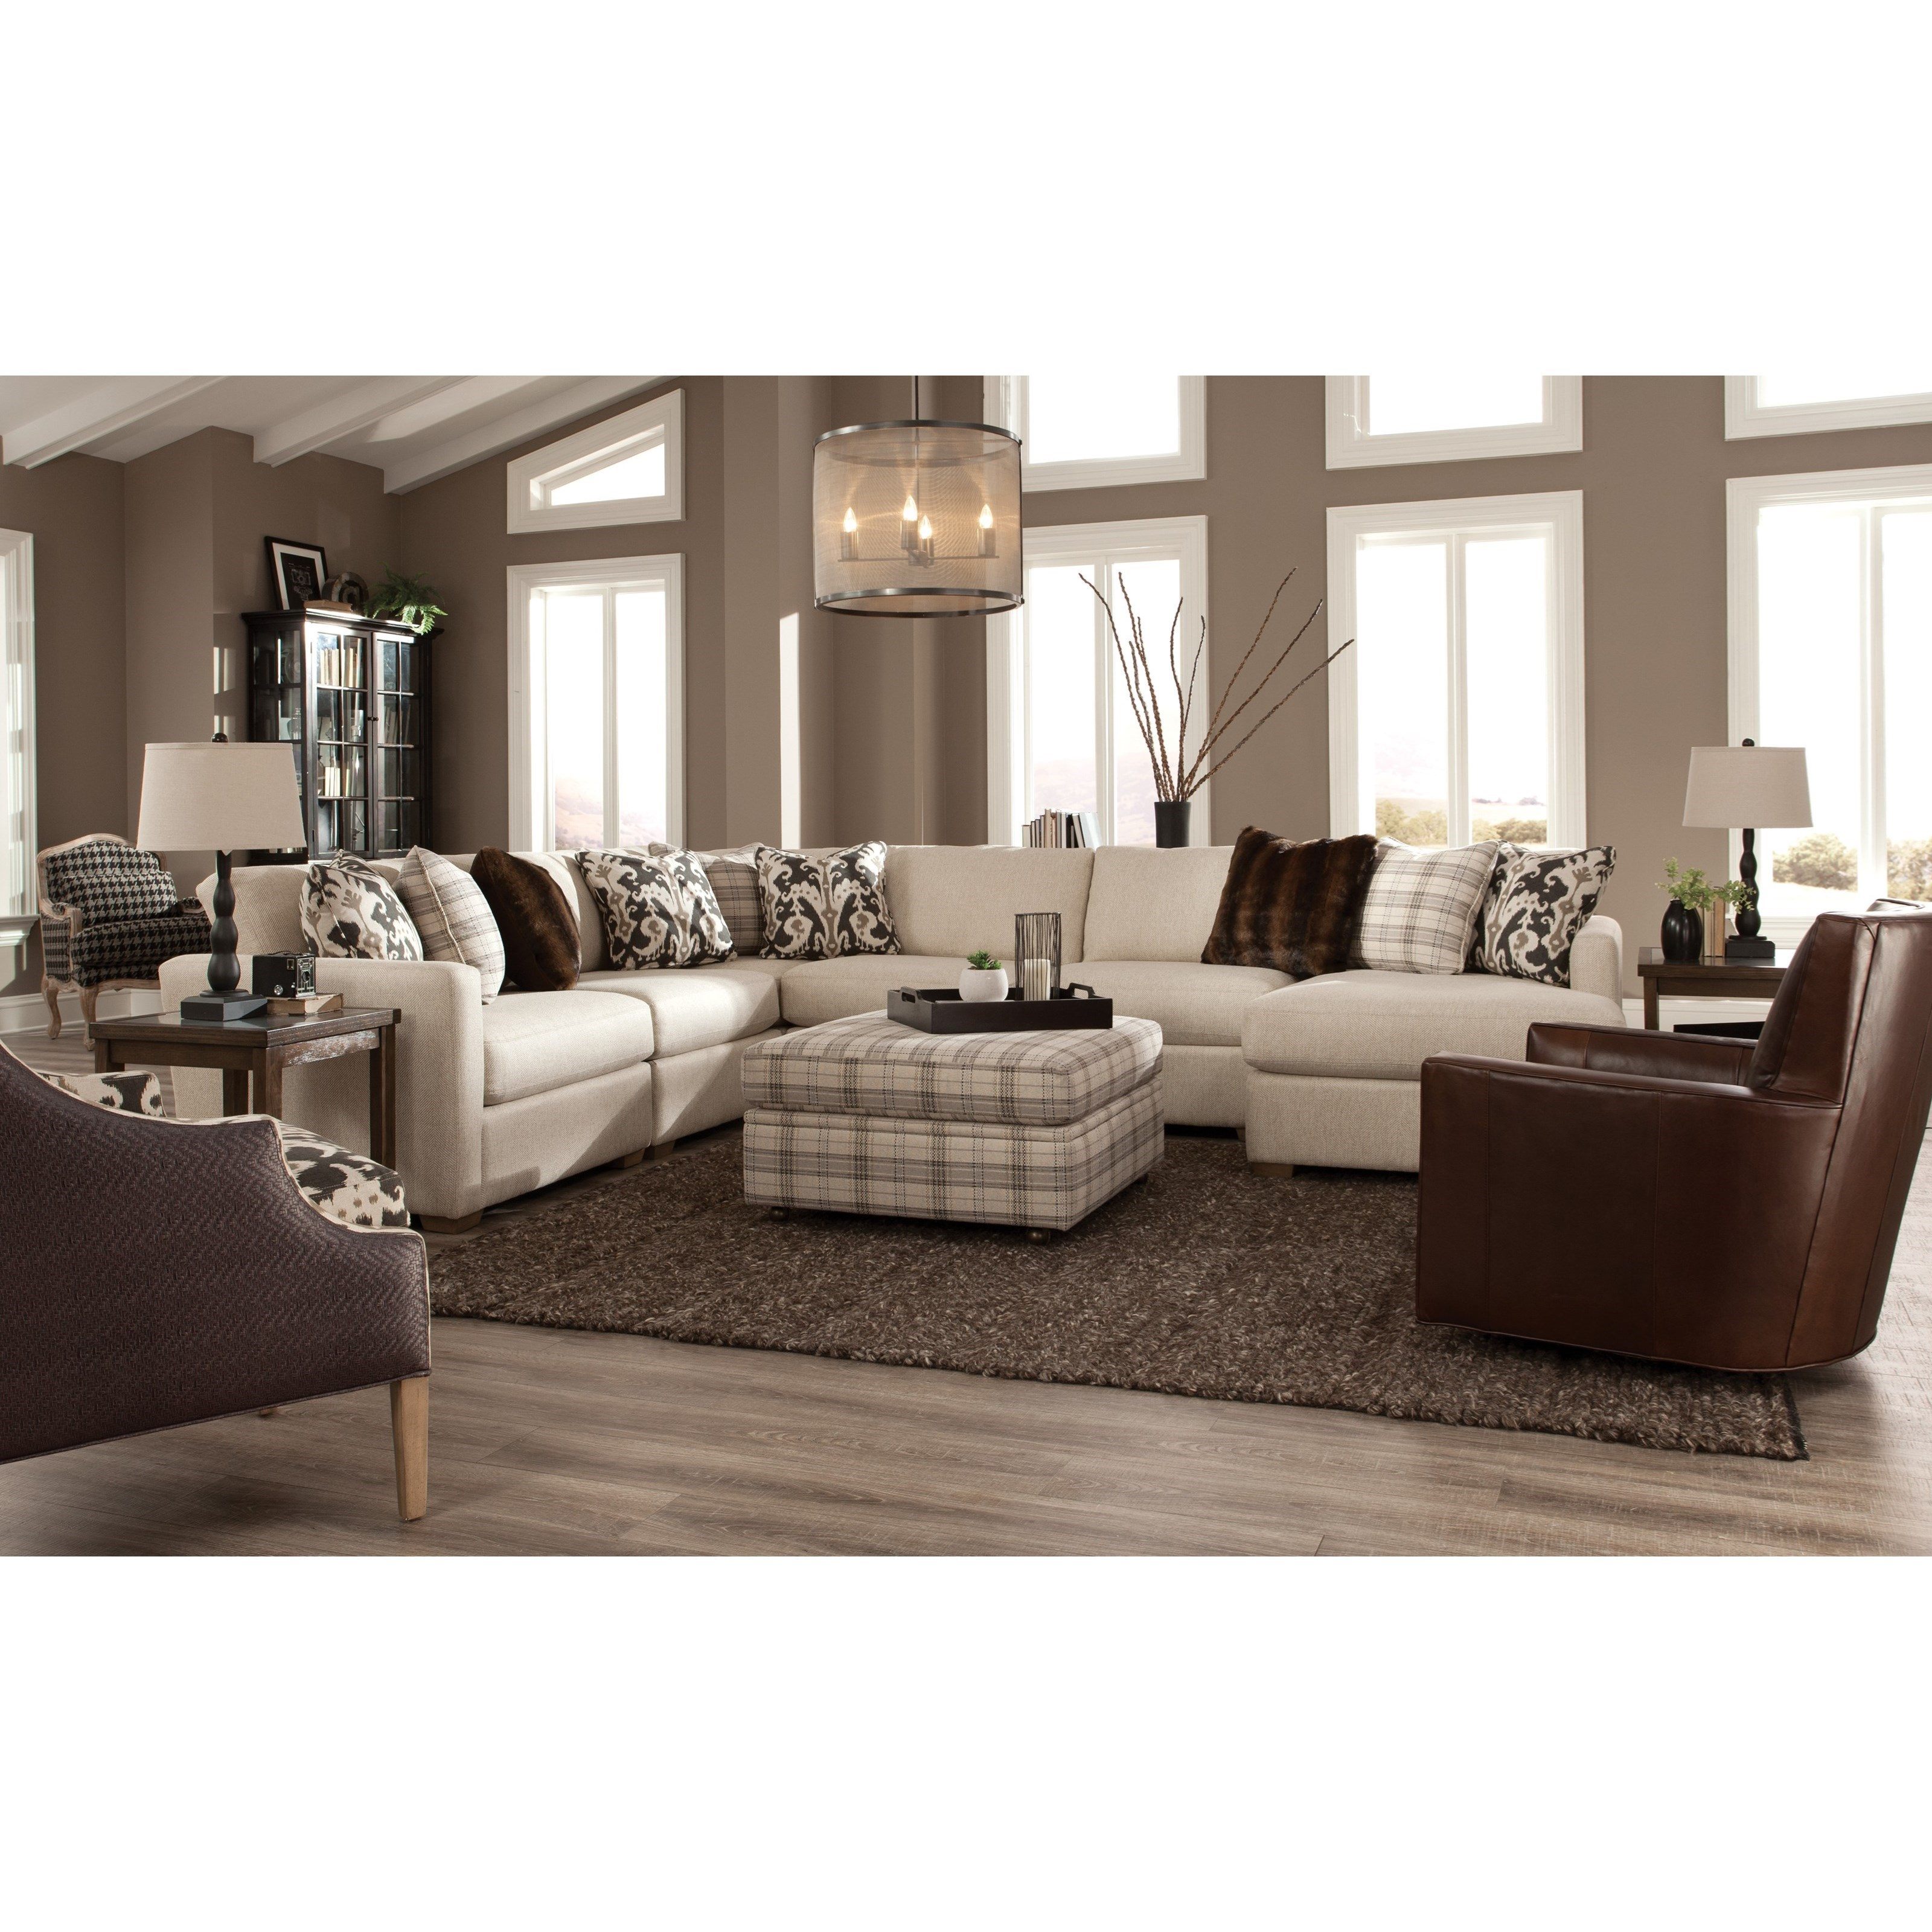 Craftmaster 751100 Five Piece Sectional With Raf Chaise Belfort Furniture Sectional Sofas